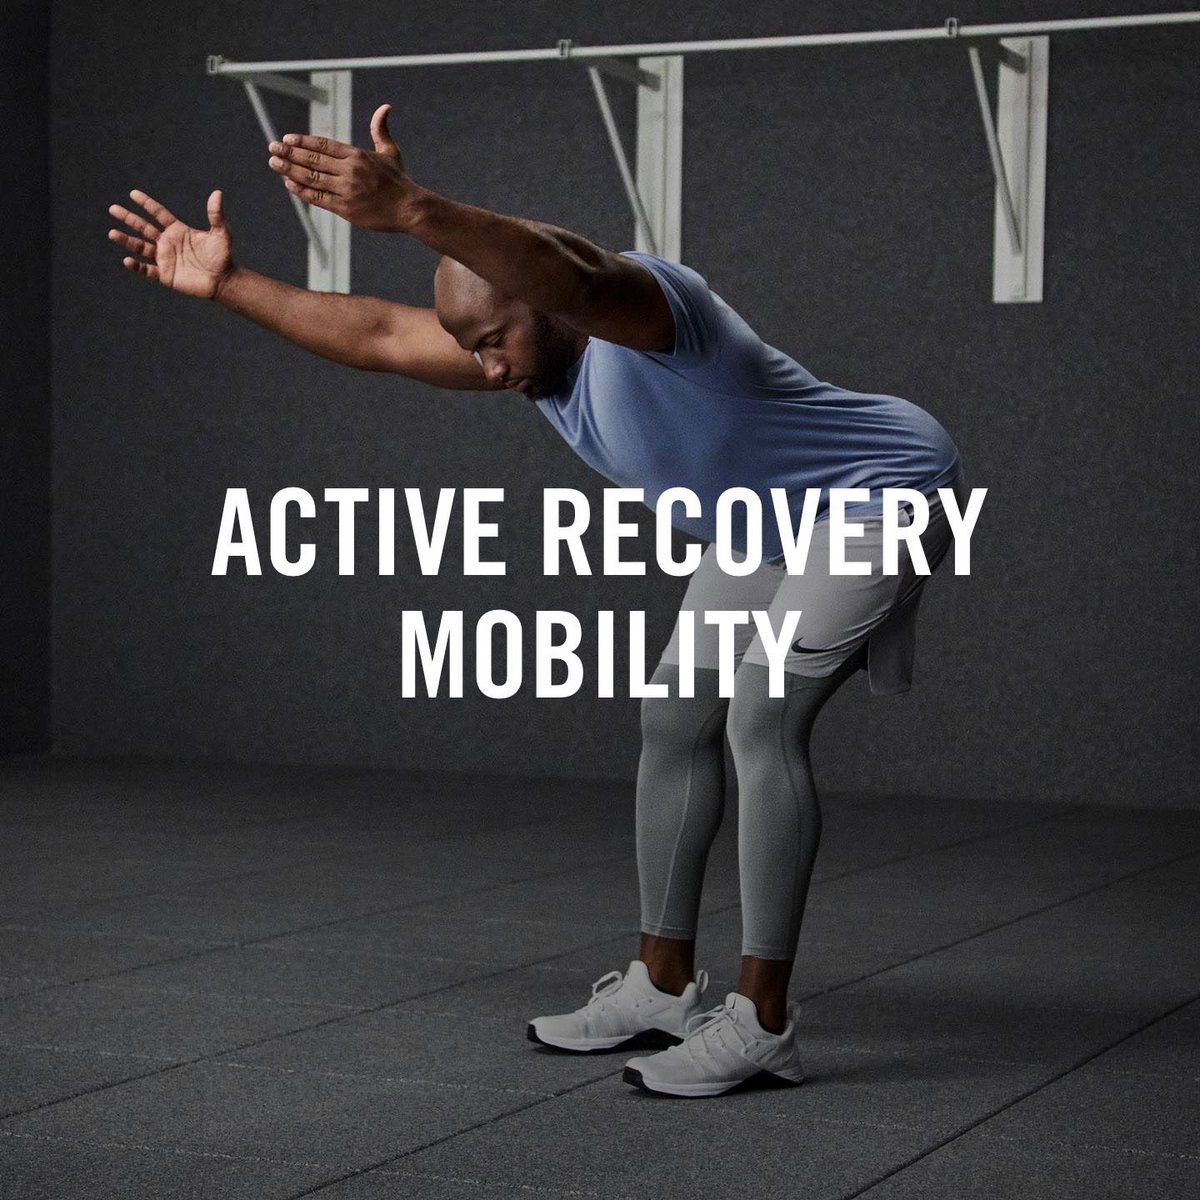 Recover. I just completed a workout with Nike Training Club! #TeamNike #NikeTraining #NikeTrainingClub #NikeTrainingClubNY